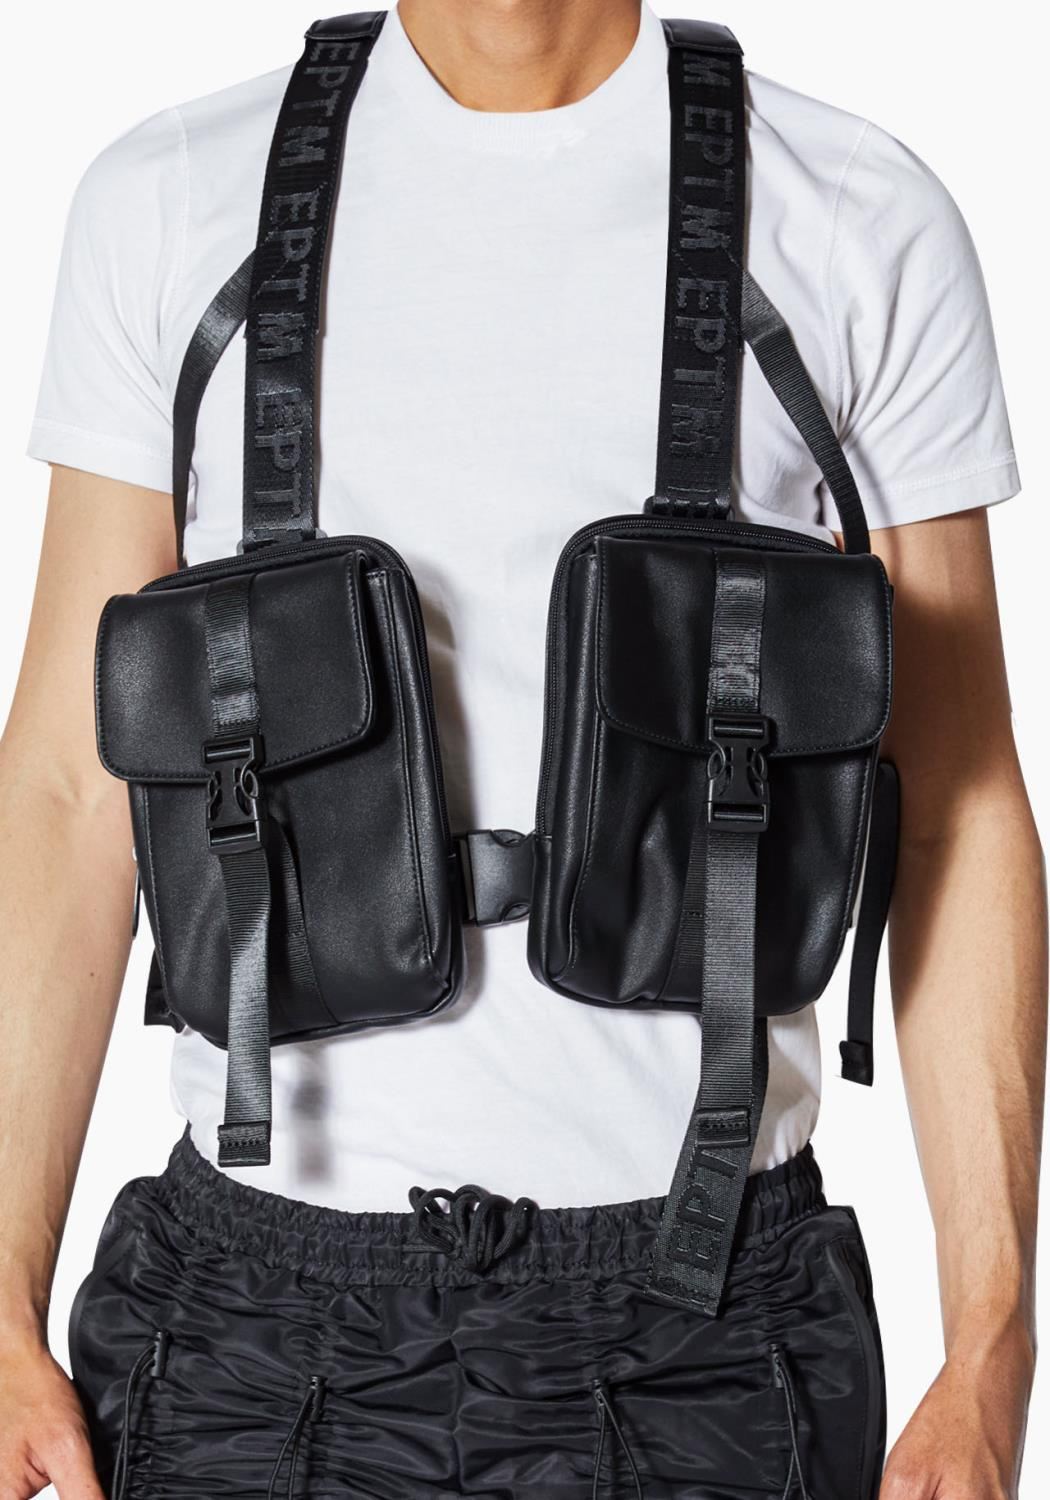 EPTM- Harness Bag